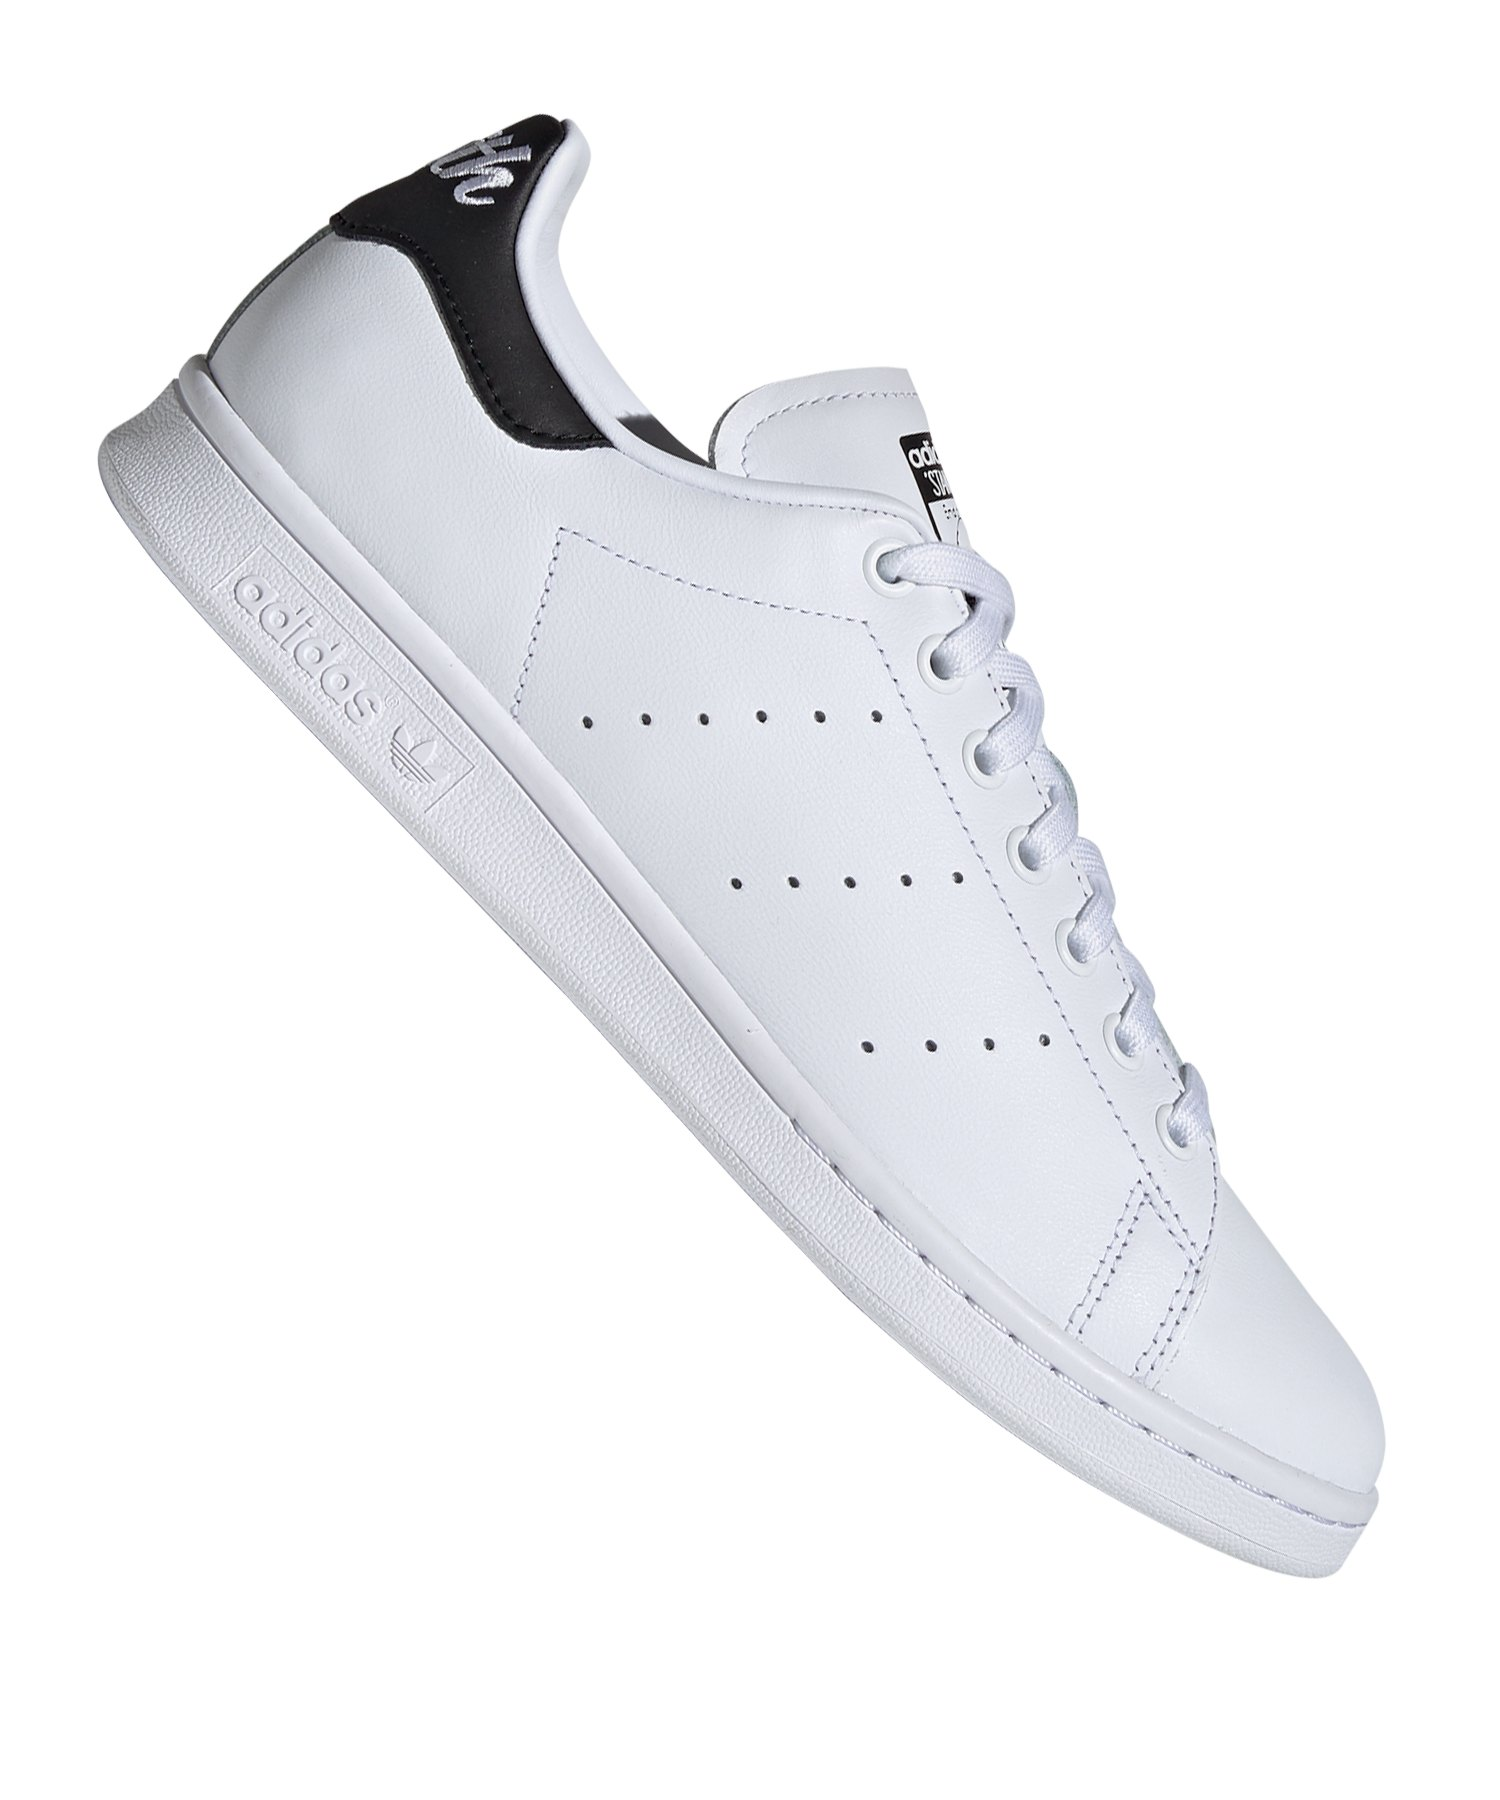 Adidas Originals Sneaker Smith Weiss Stan H2iee9dybw KTc1lF3J